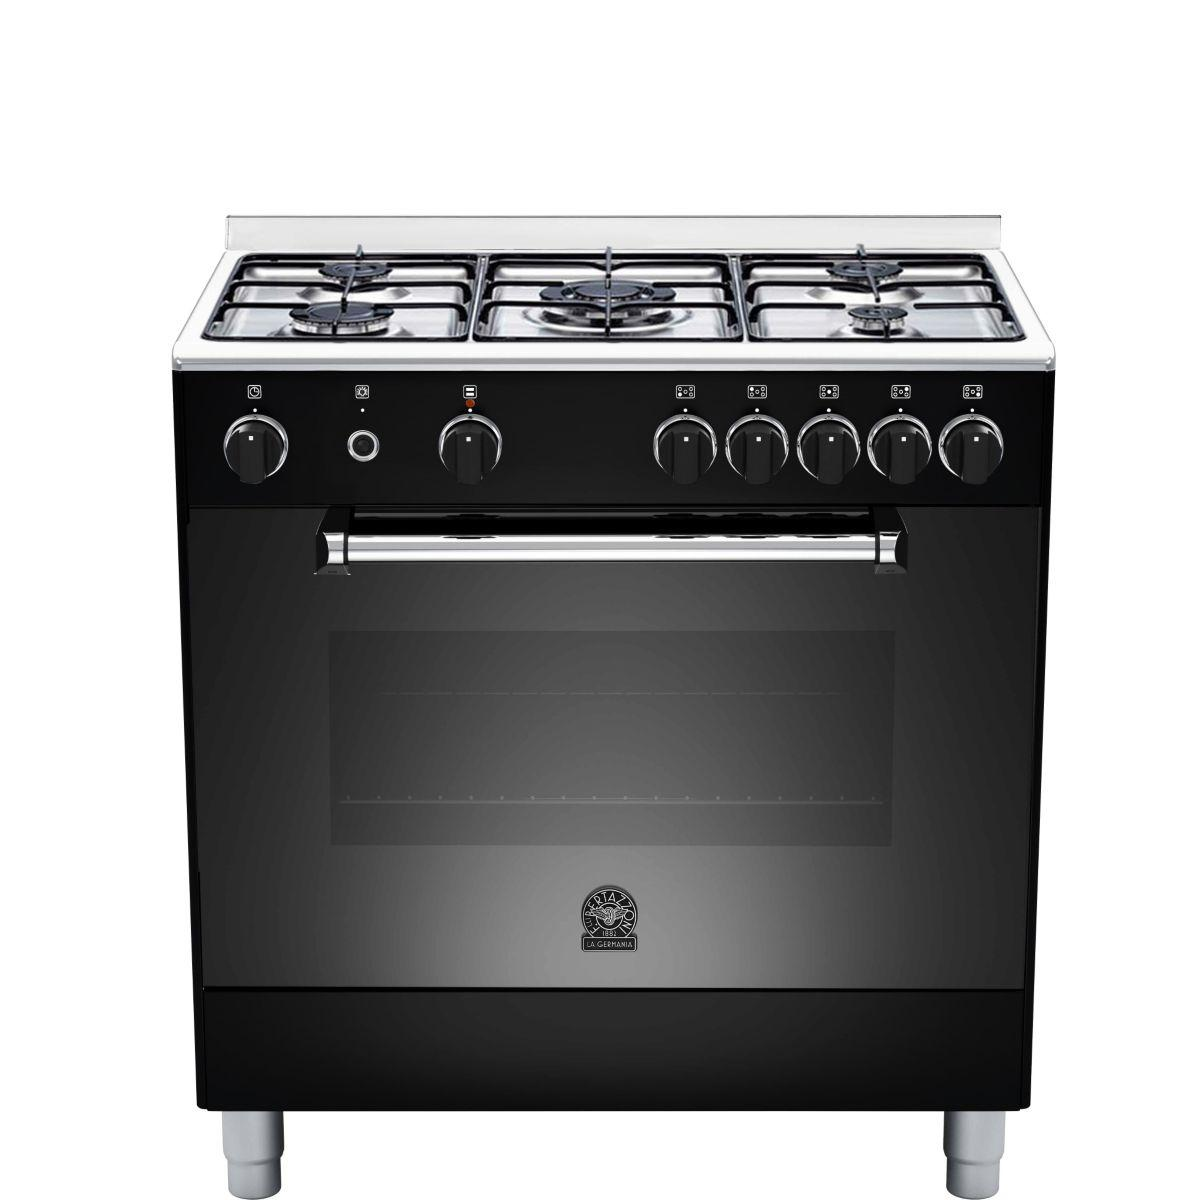 Piano de cuisson gaz bertazzoni germania am85c21dn noir (photo)